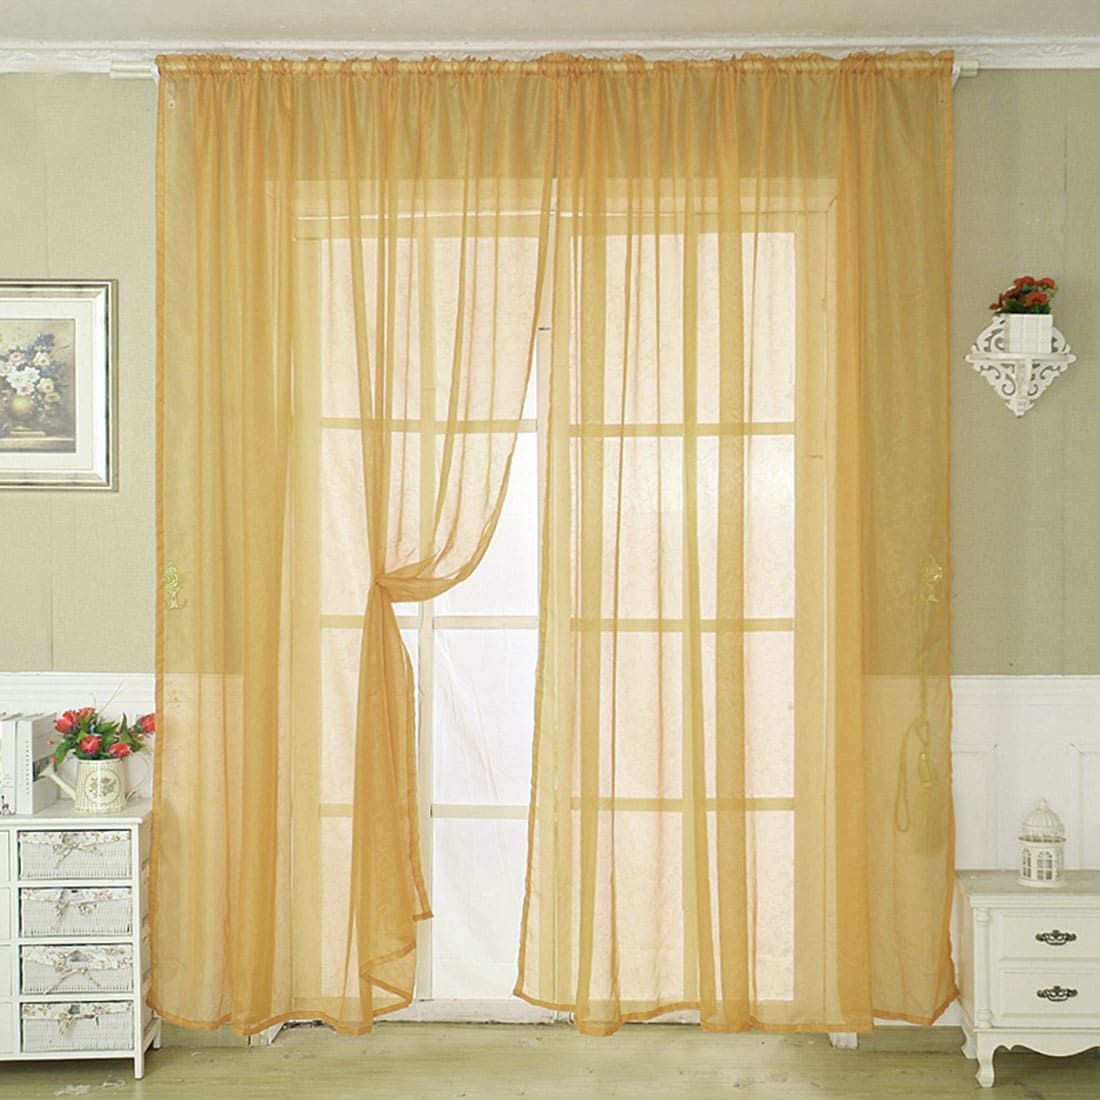 Voile Door Window Curtain Drape Panel Sheer Scarf Valances